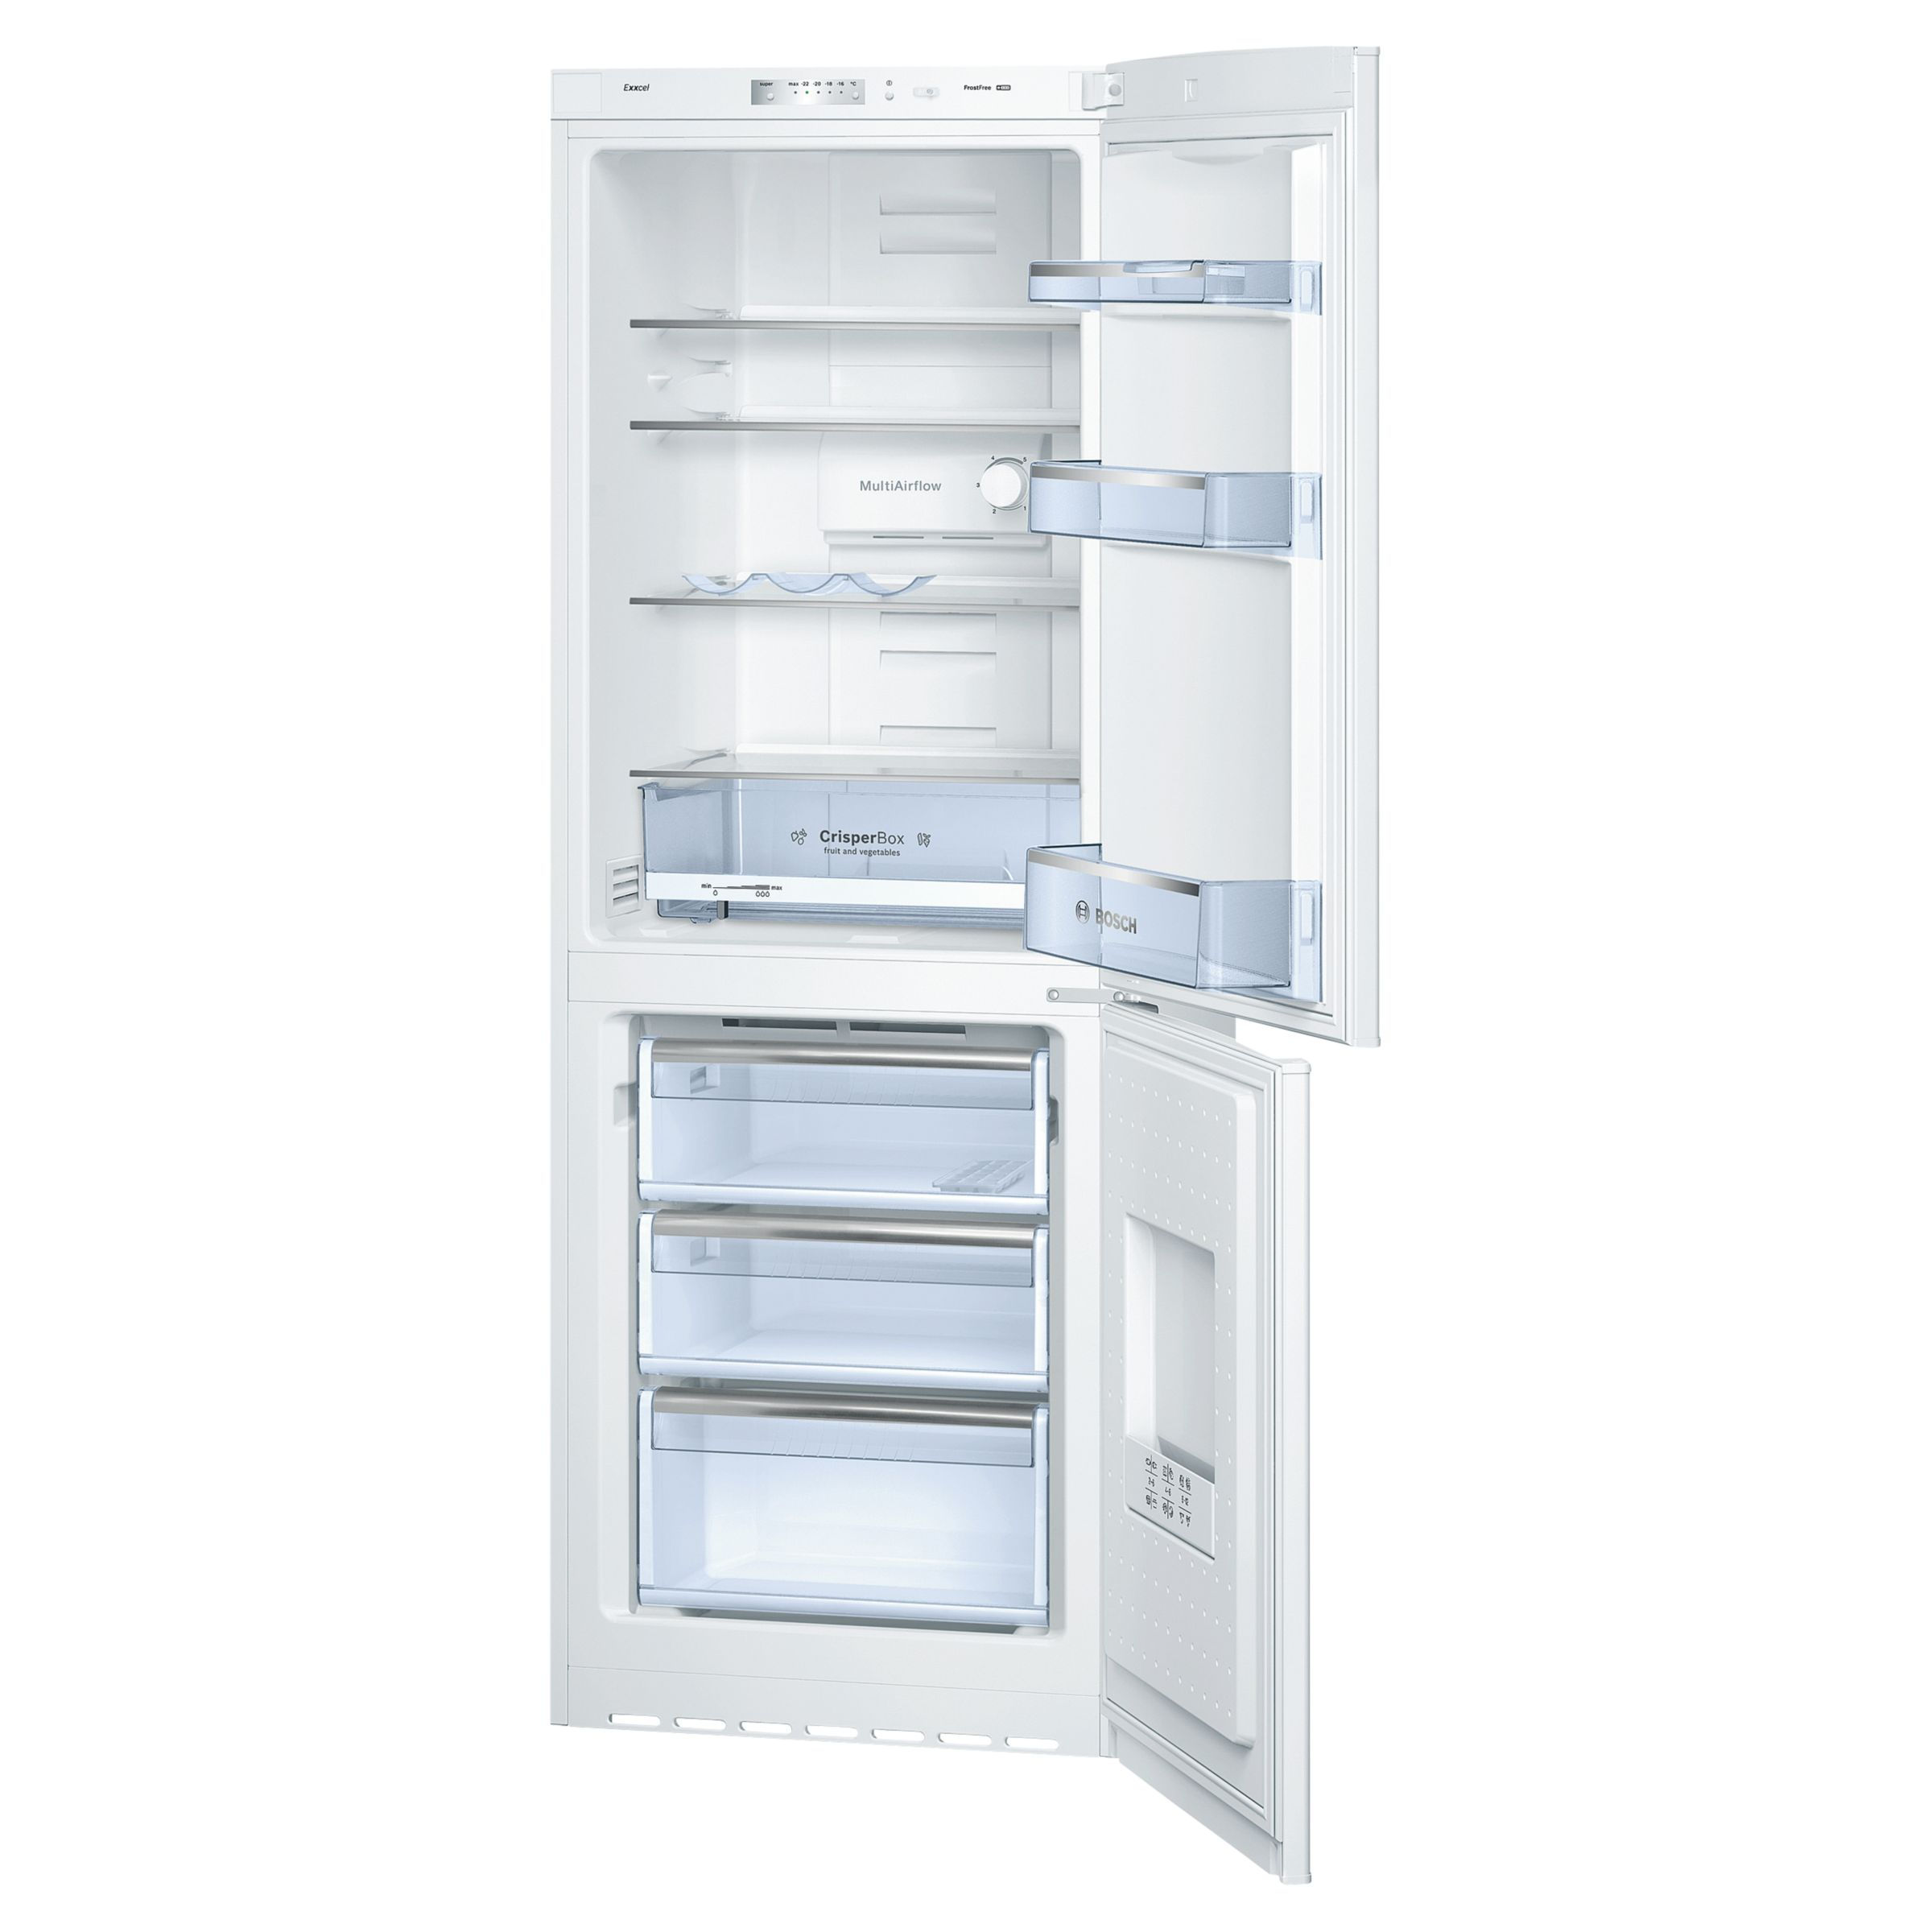 No Frost Bosch No Frost Kgn30vw25g Fridge Freezer A Energy Rating 60cm